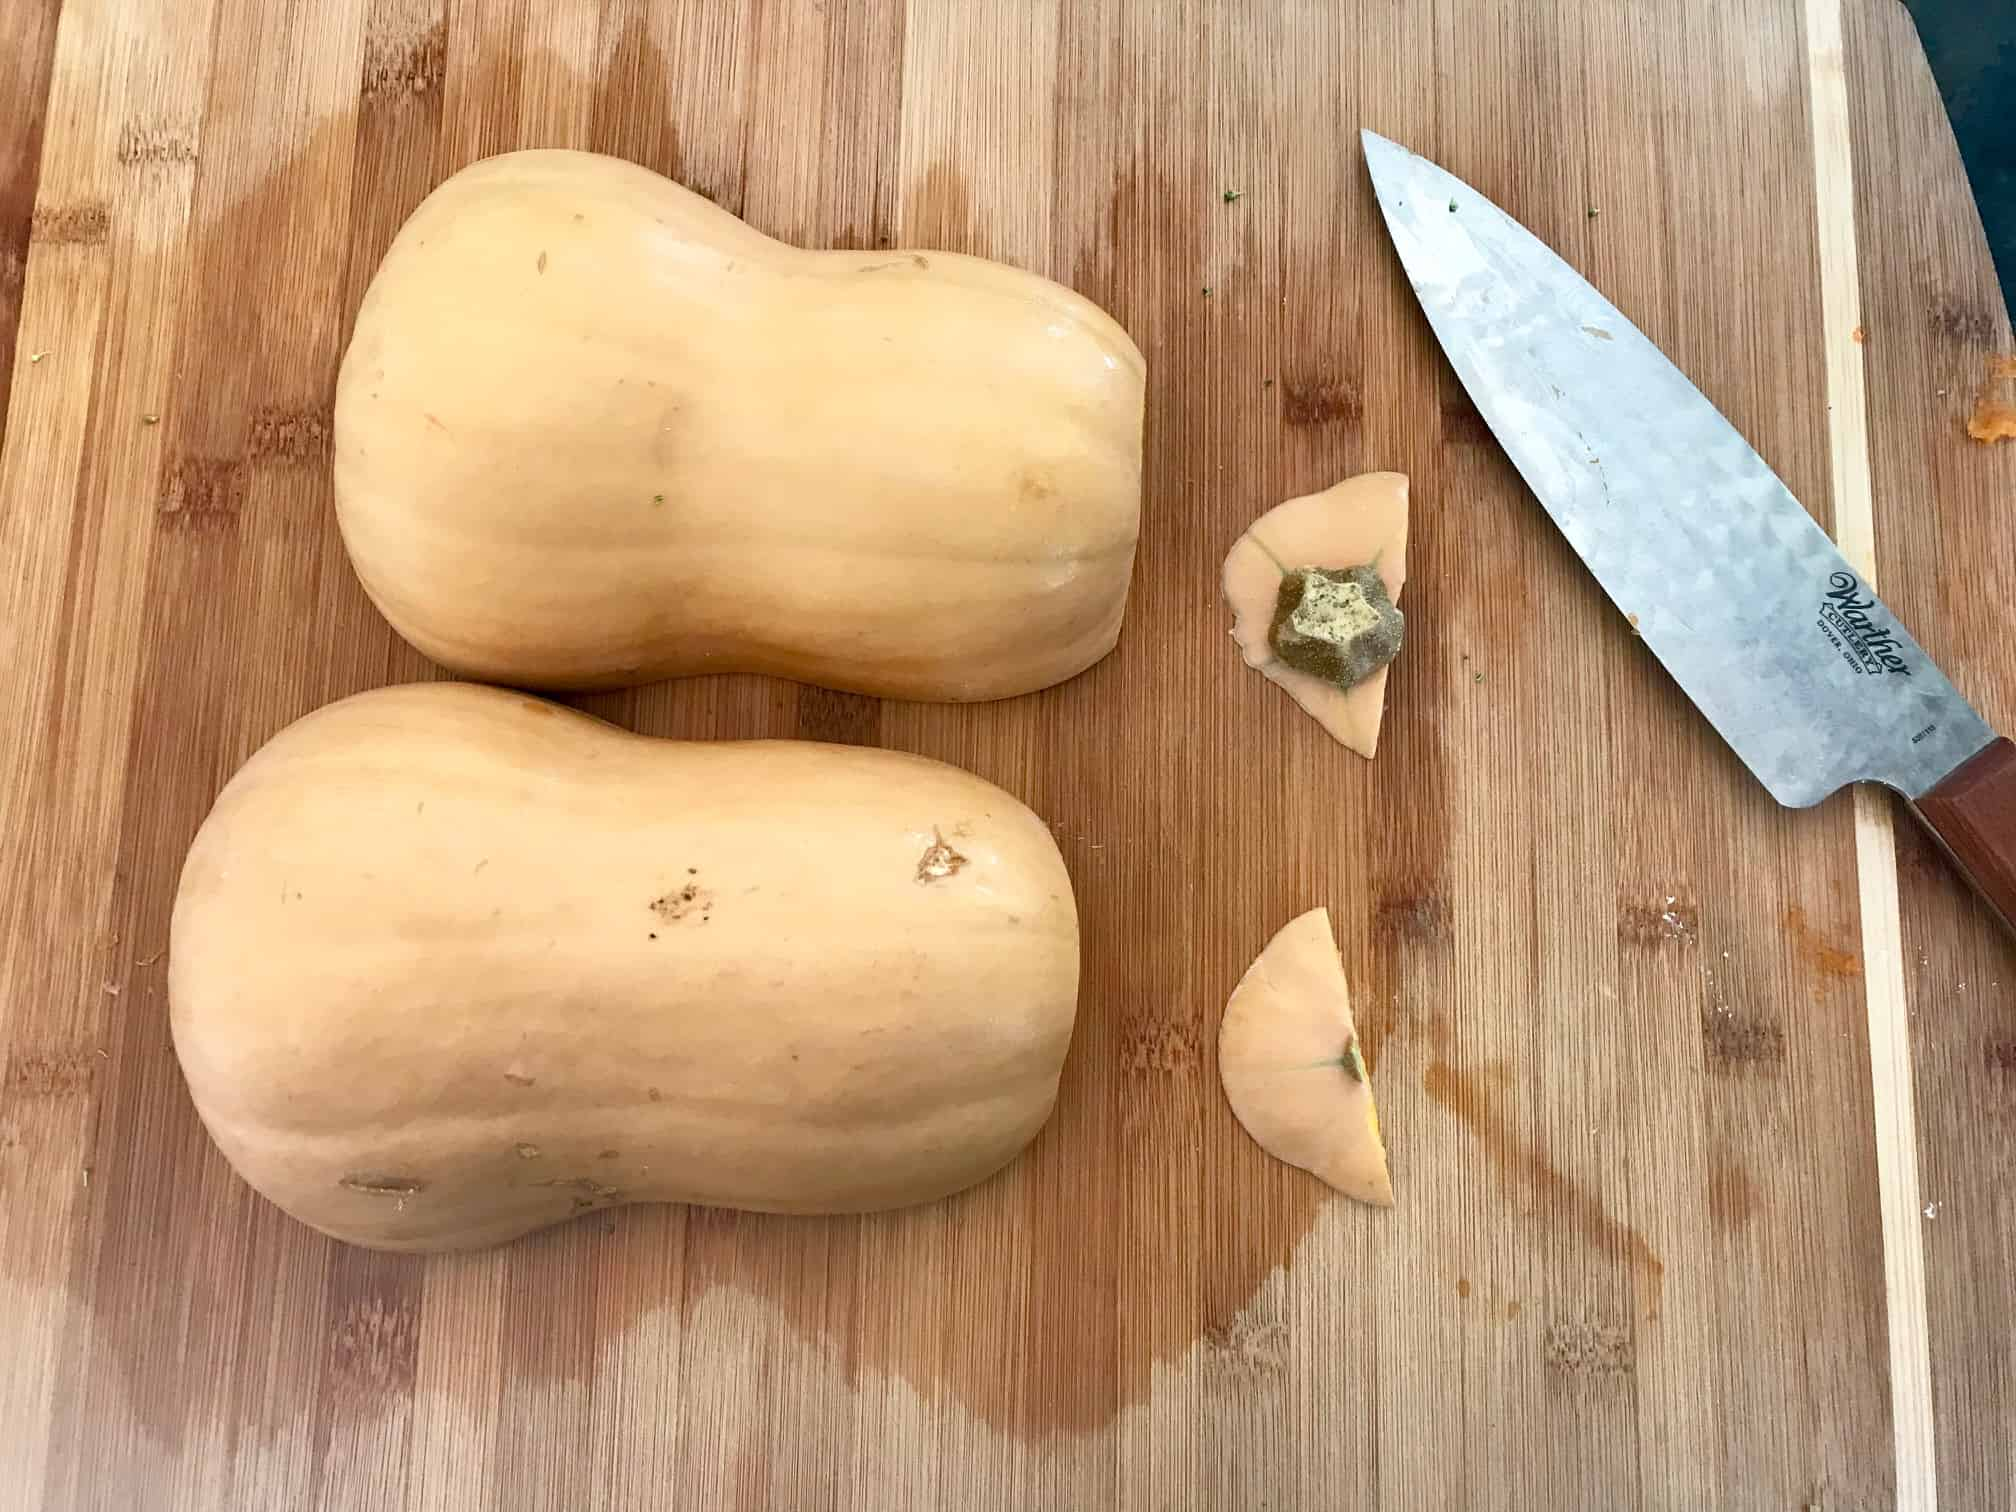 Butternut squash on cutting board cut in half with tops cut off